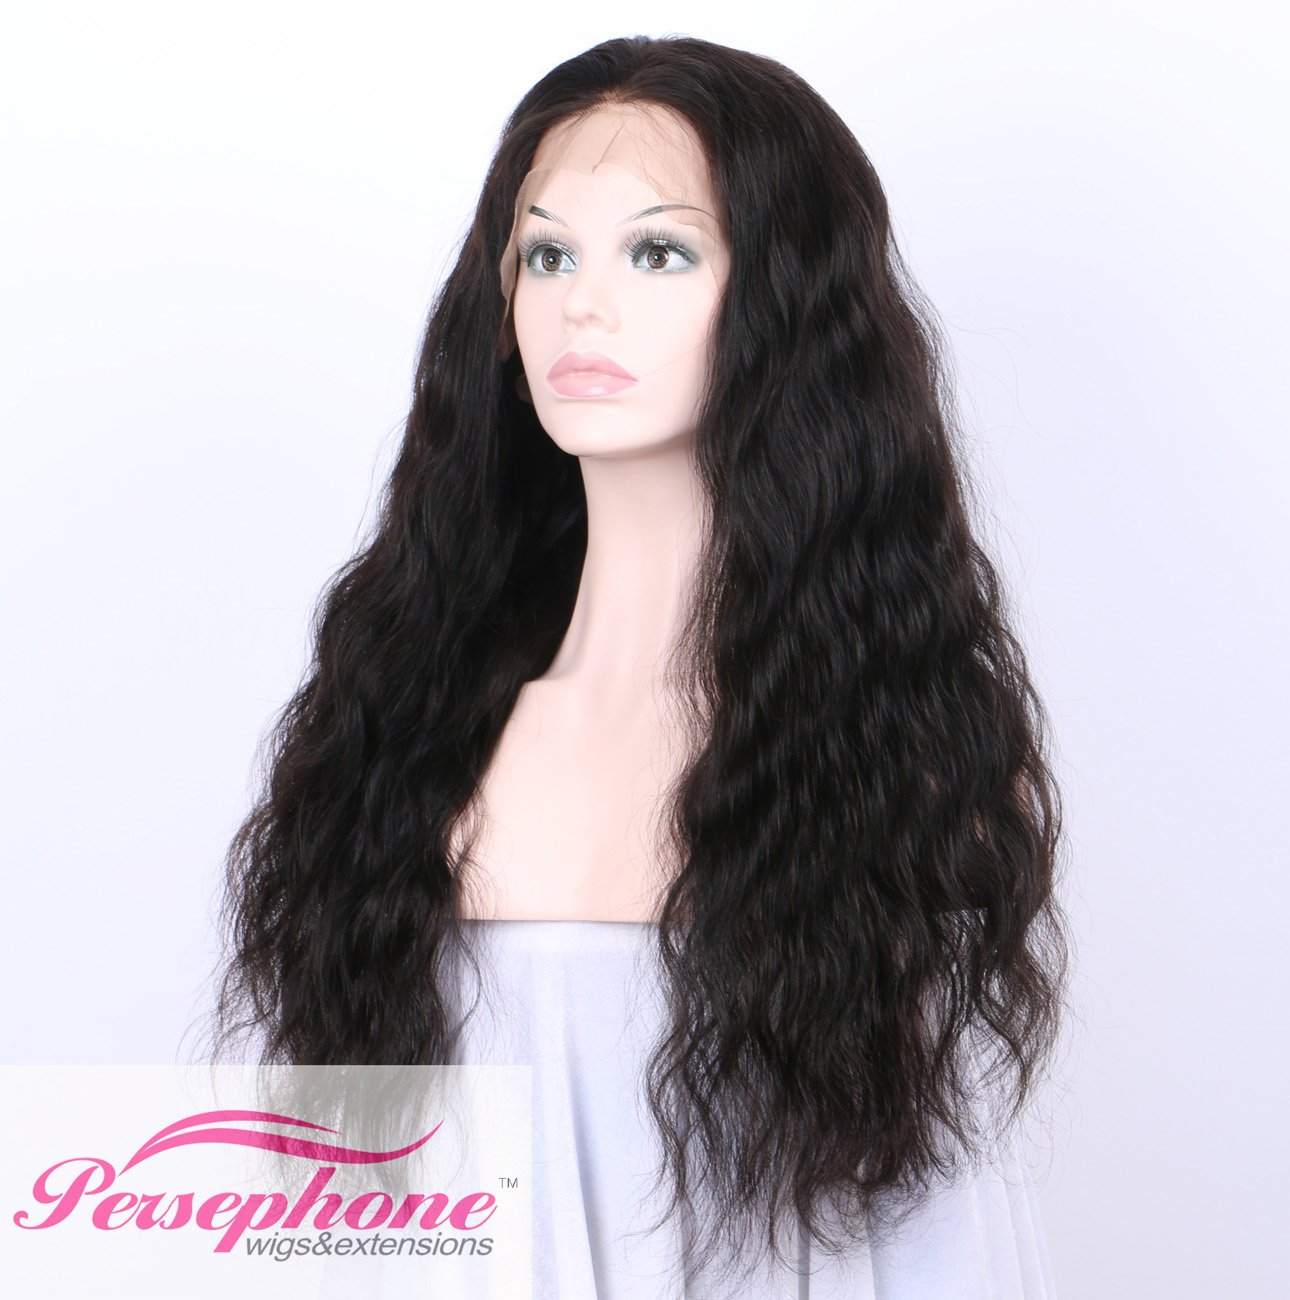 Persephone Glueless 200% Extra Heavy Density Body Wave 360 Lace Frontal Wigs Human Hair with Baby Hair Brazilian Remy Hair Lace Wig with Natural Hairline for Women Natural Color 22inches by Persephone (Image #5)